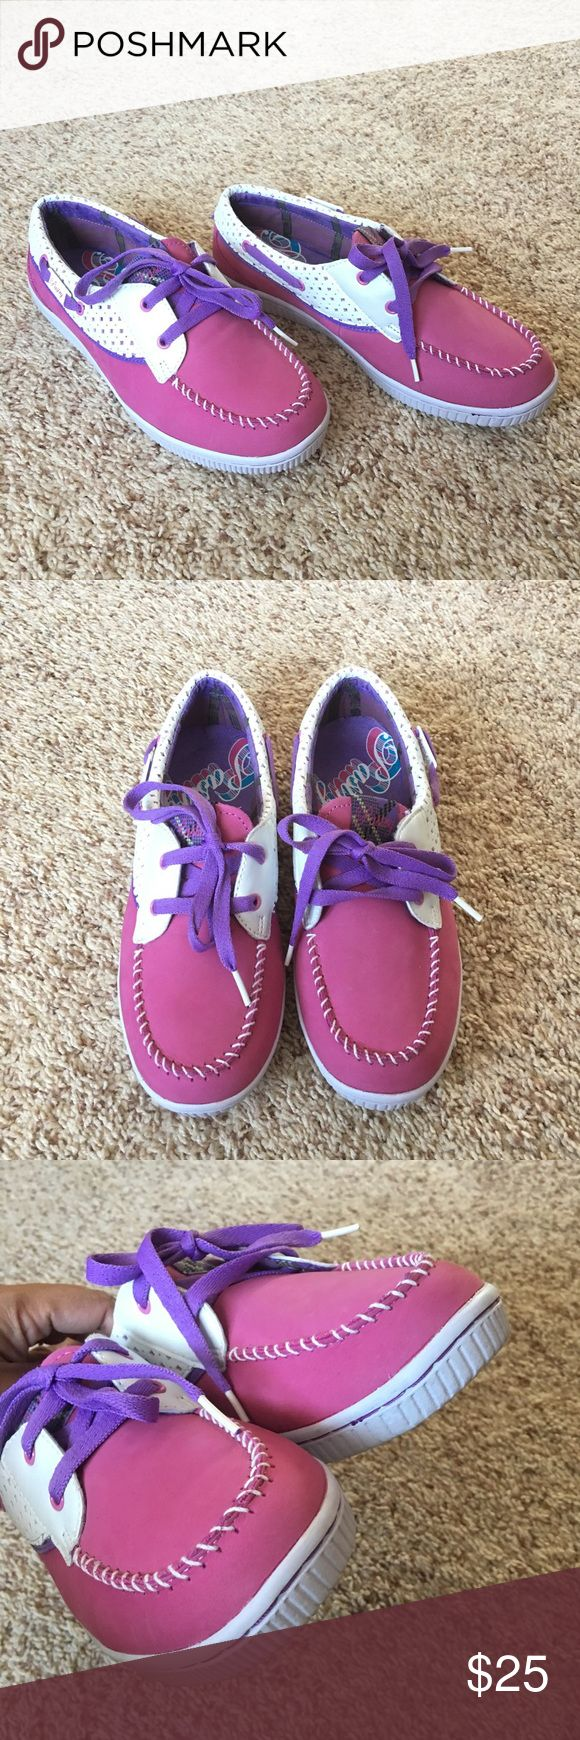 Authentic Pastry Shoes GORGEOUS 💕 Dog miss these beautiful shoes from Pastry💕 Size 8 and very comfortable. These are never used and in excellent condition. NO TRADE ❌ Pastry Shoes